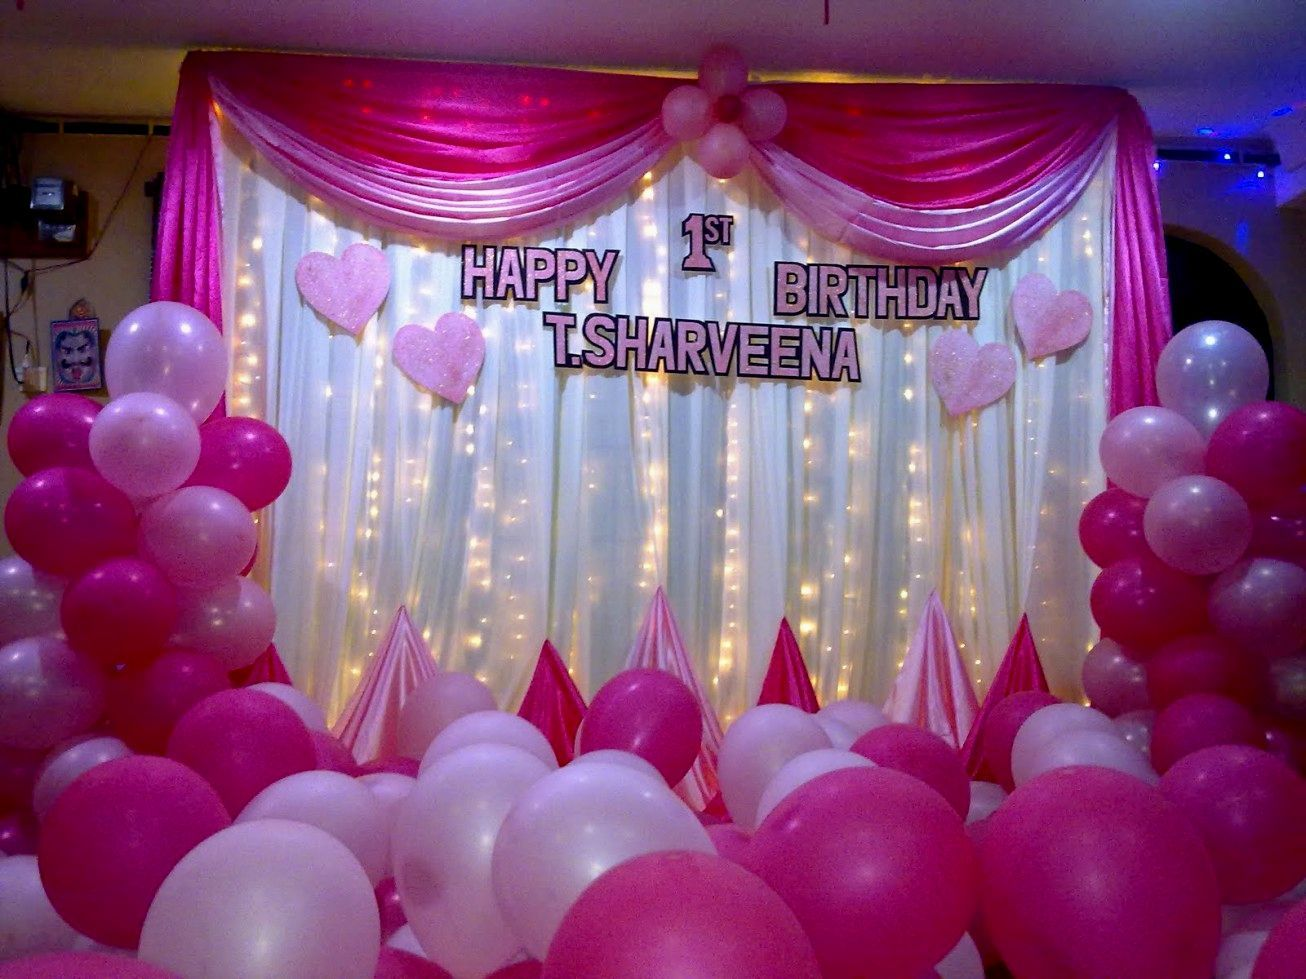 Decoration ideas for birthday party at home kids birthday.